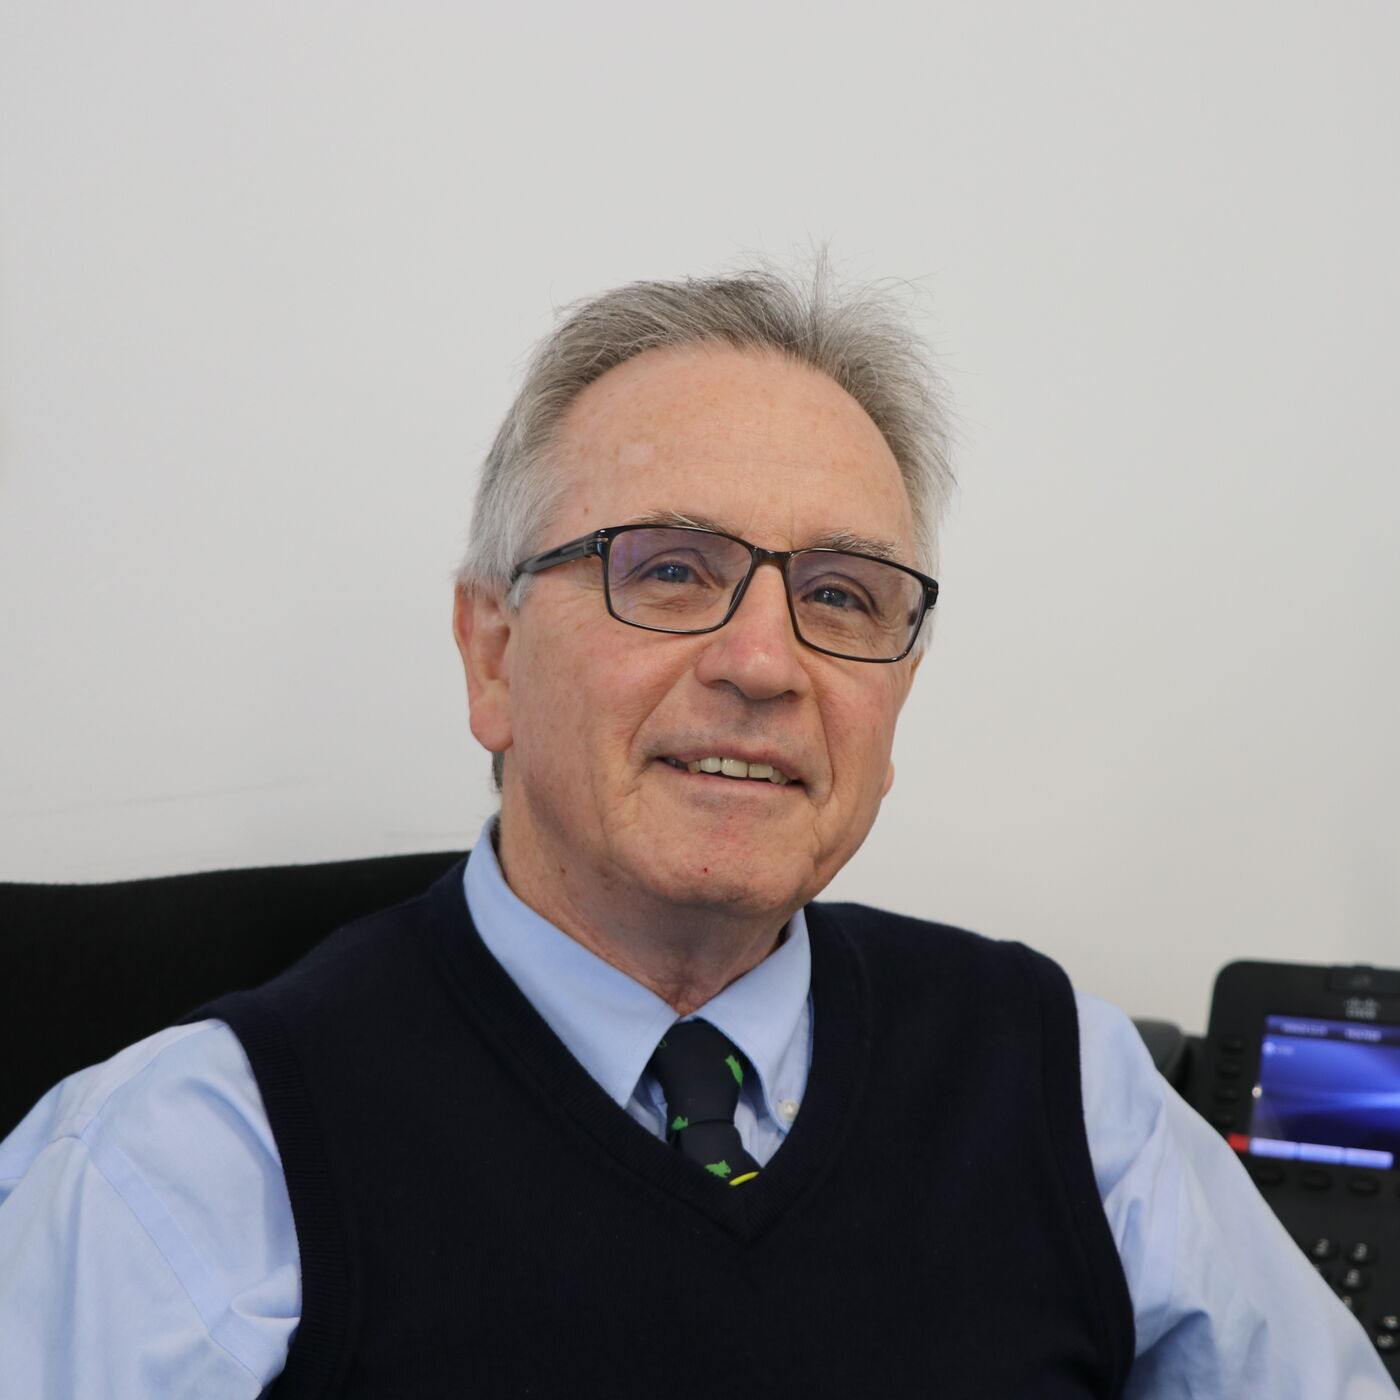 Infectious disease expert Dr Bernie Hudson explains the recent COVID-19 spikes, how this time is different and why we need to think beyond just a vaccine